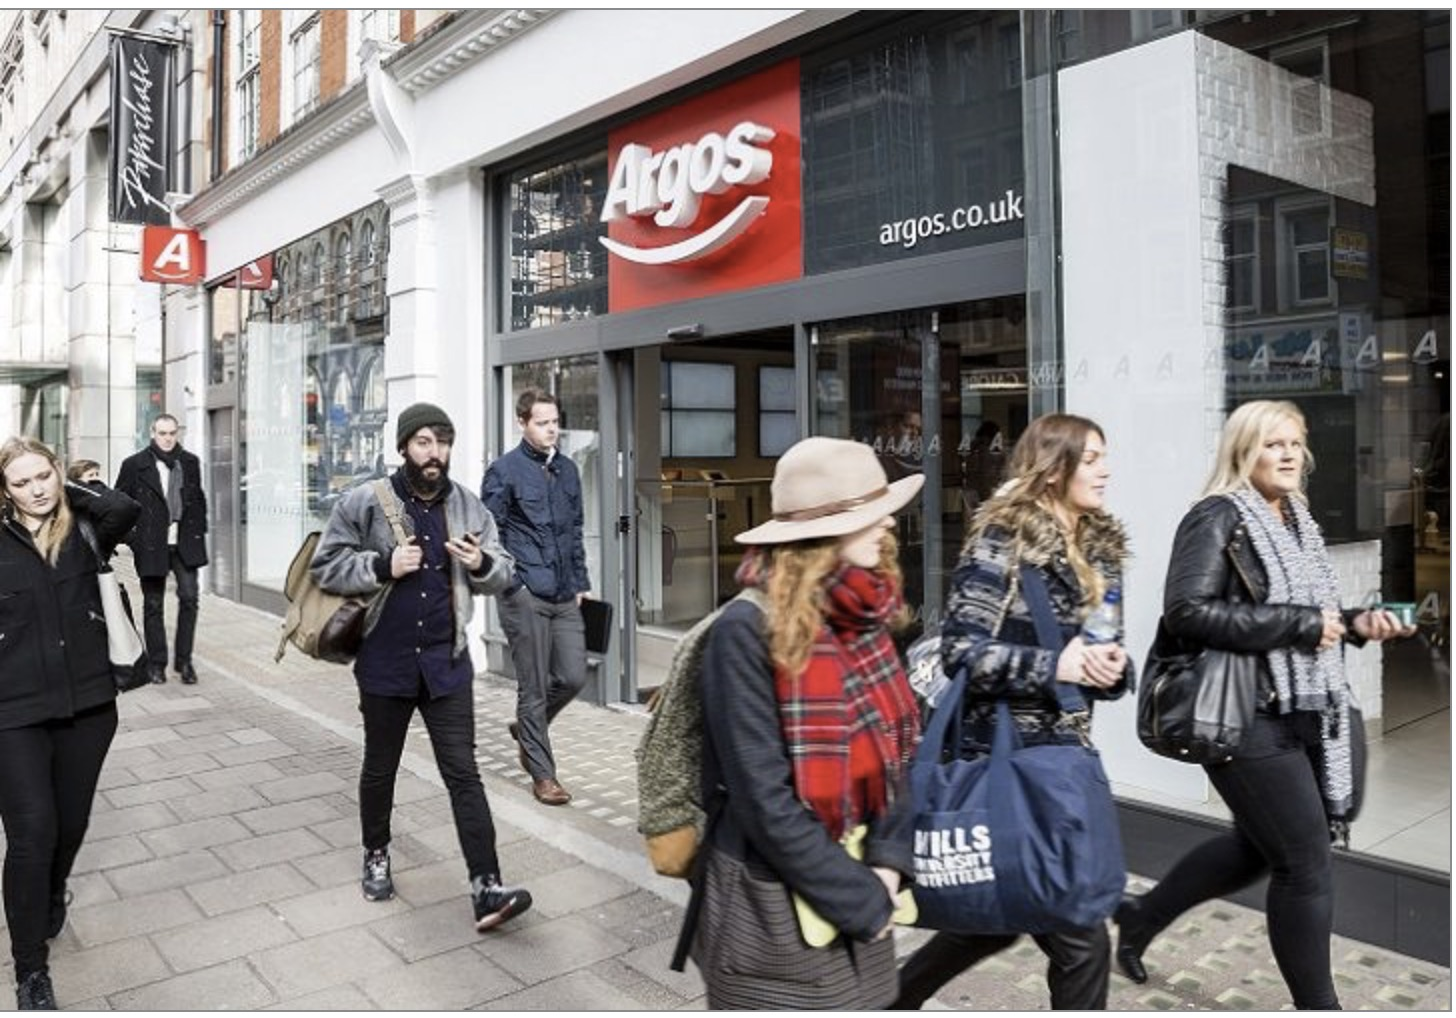 Argos opens first self-service digital store as Mobile sales hit £2bn